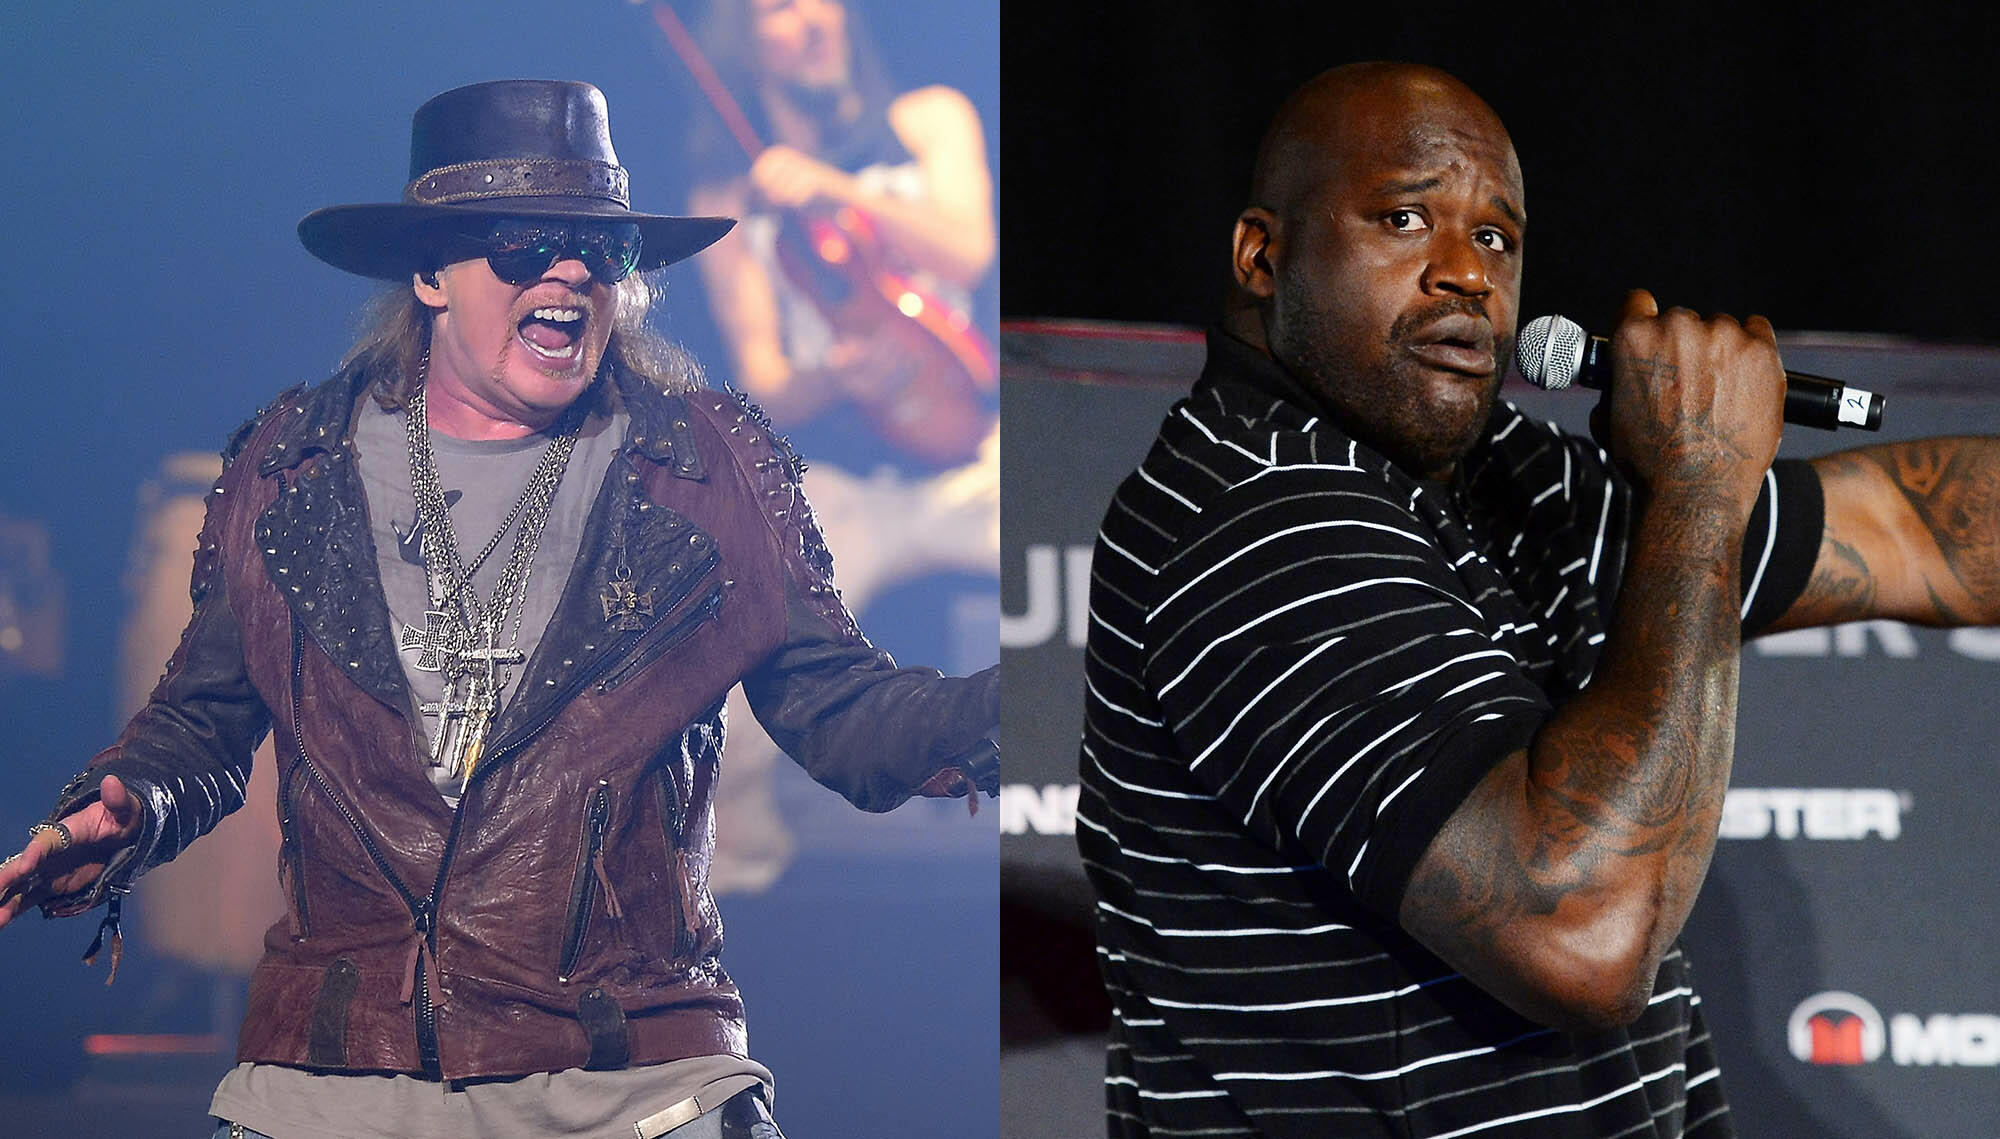 Shaq Jammed With Guns N' Roses During 'Chinese Democracy' Sessions